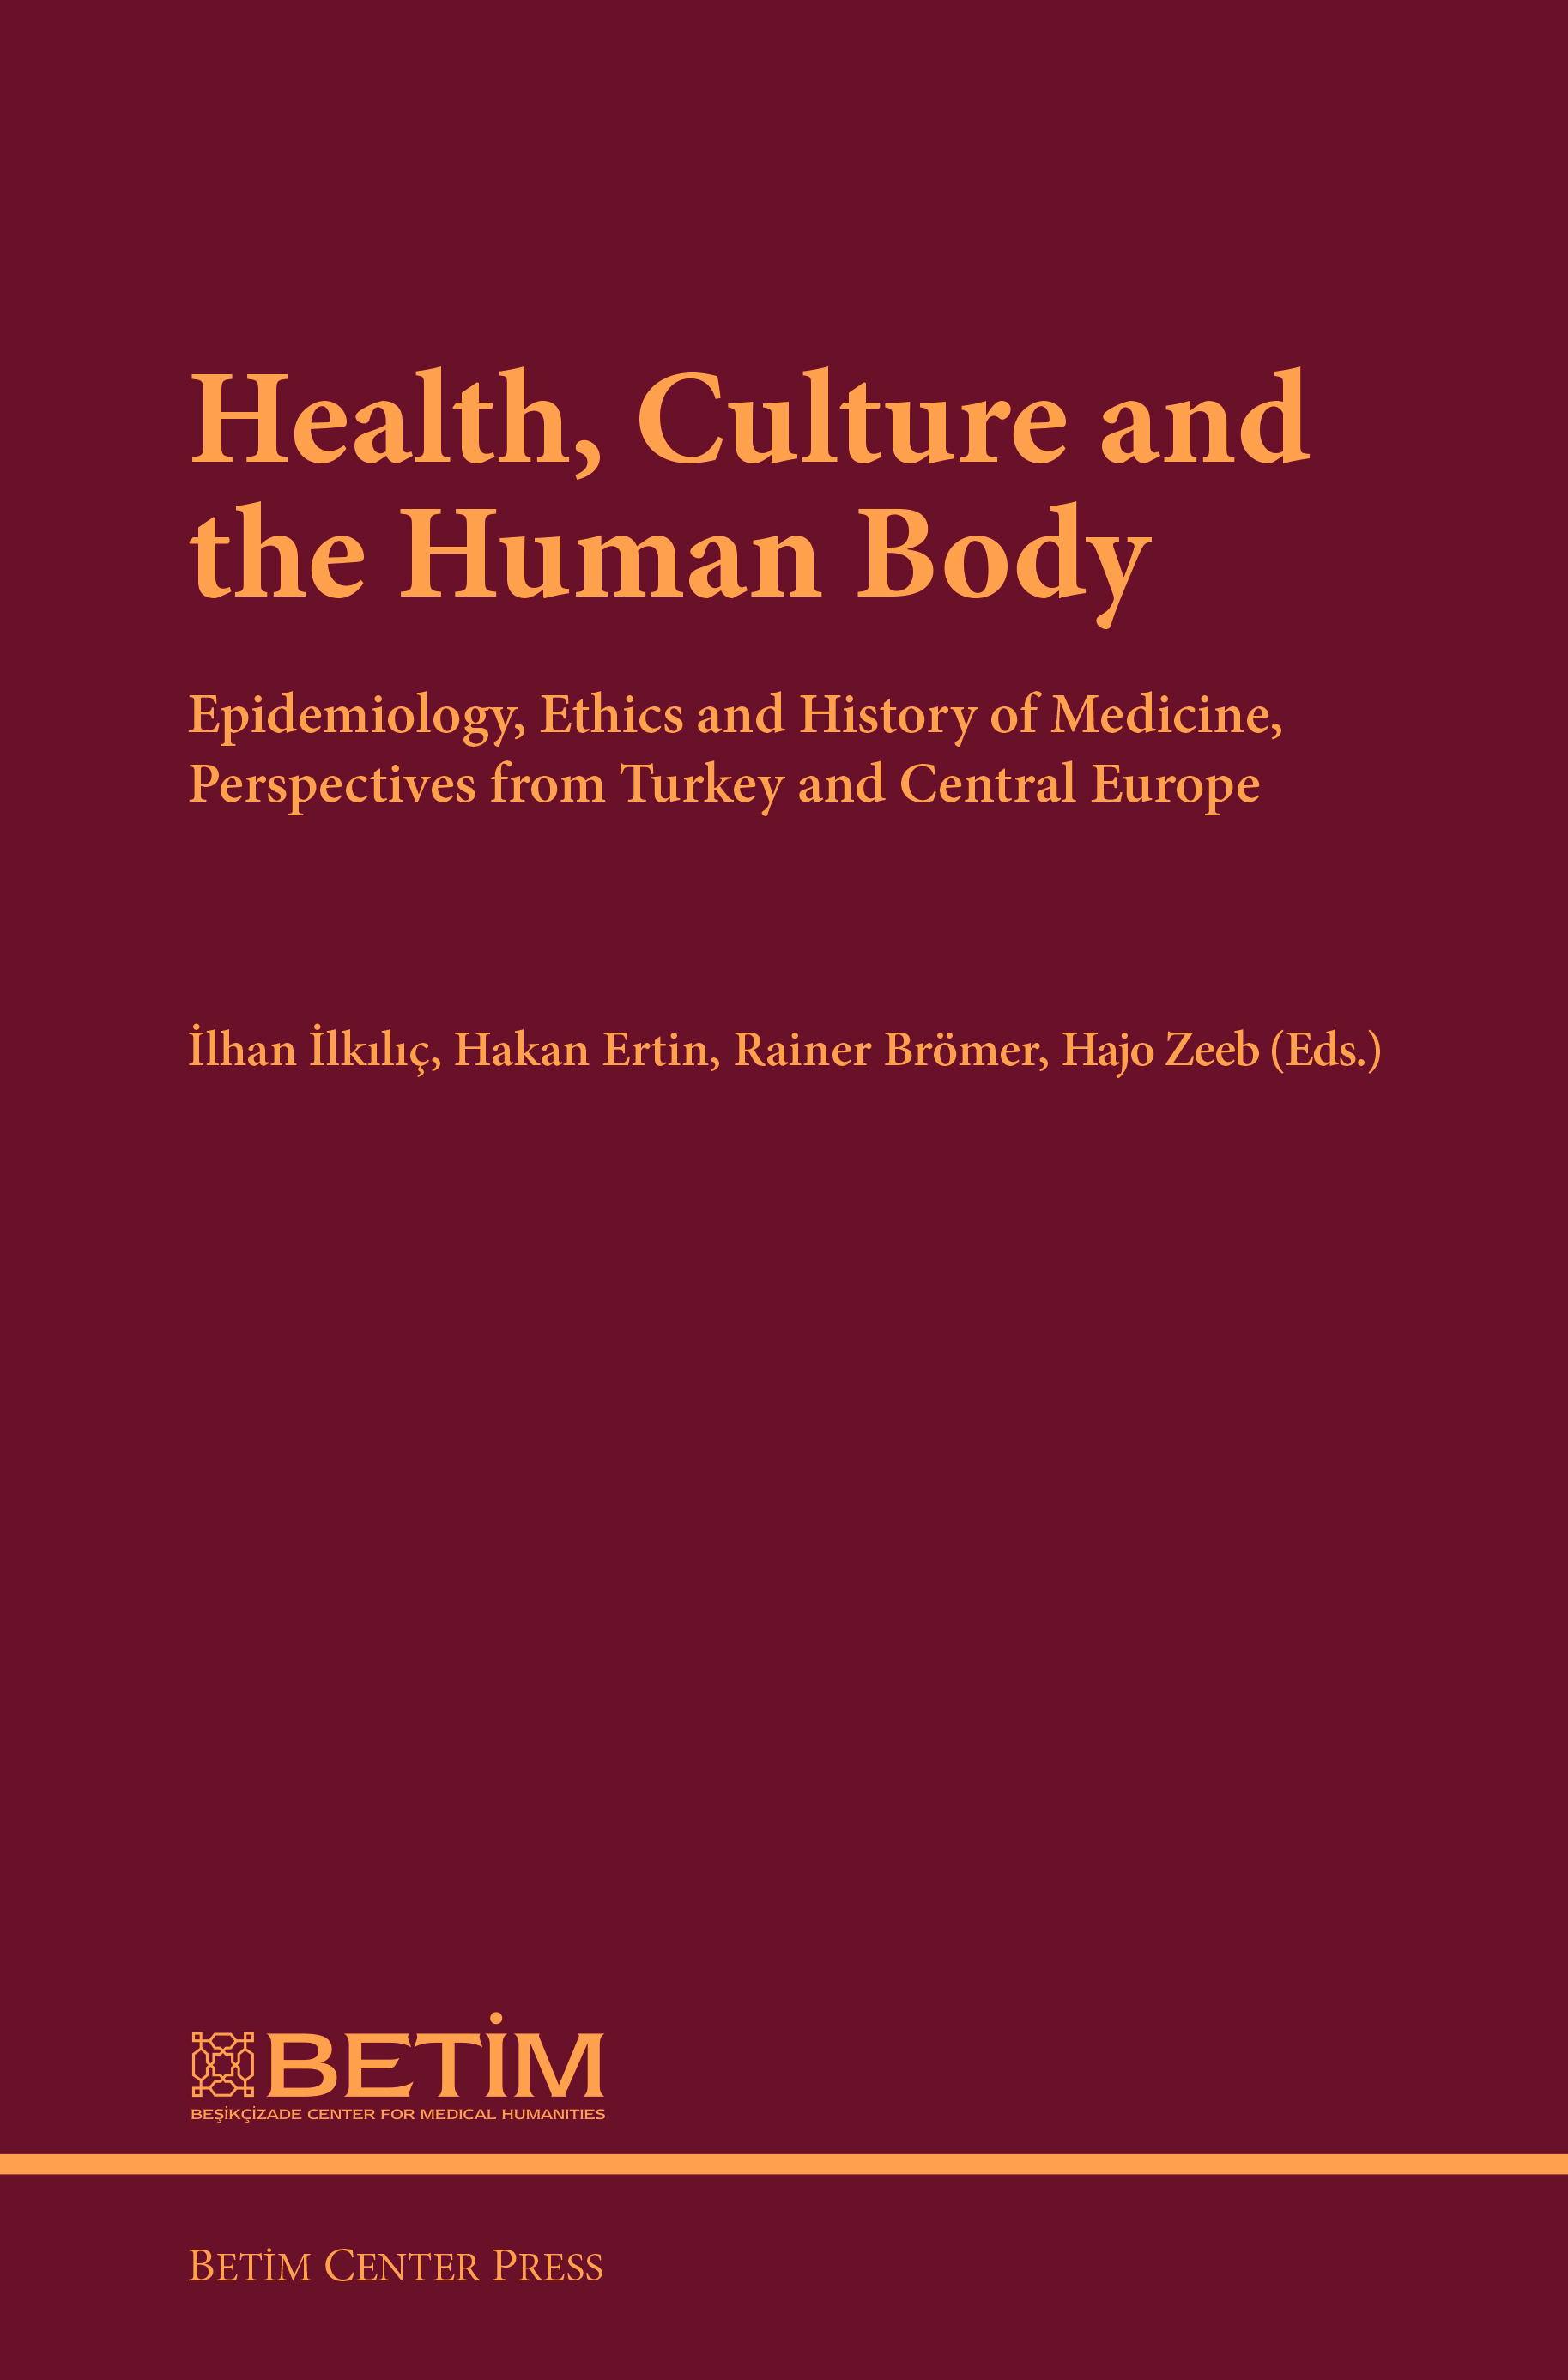 Health, Culture and The Human Body